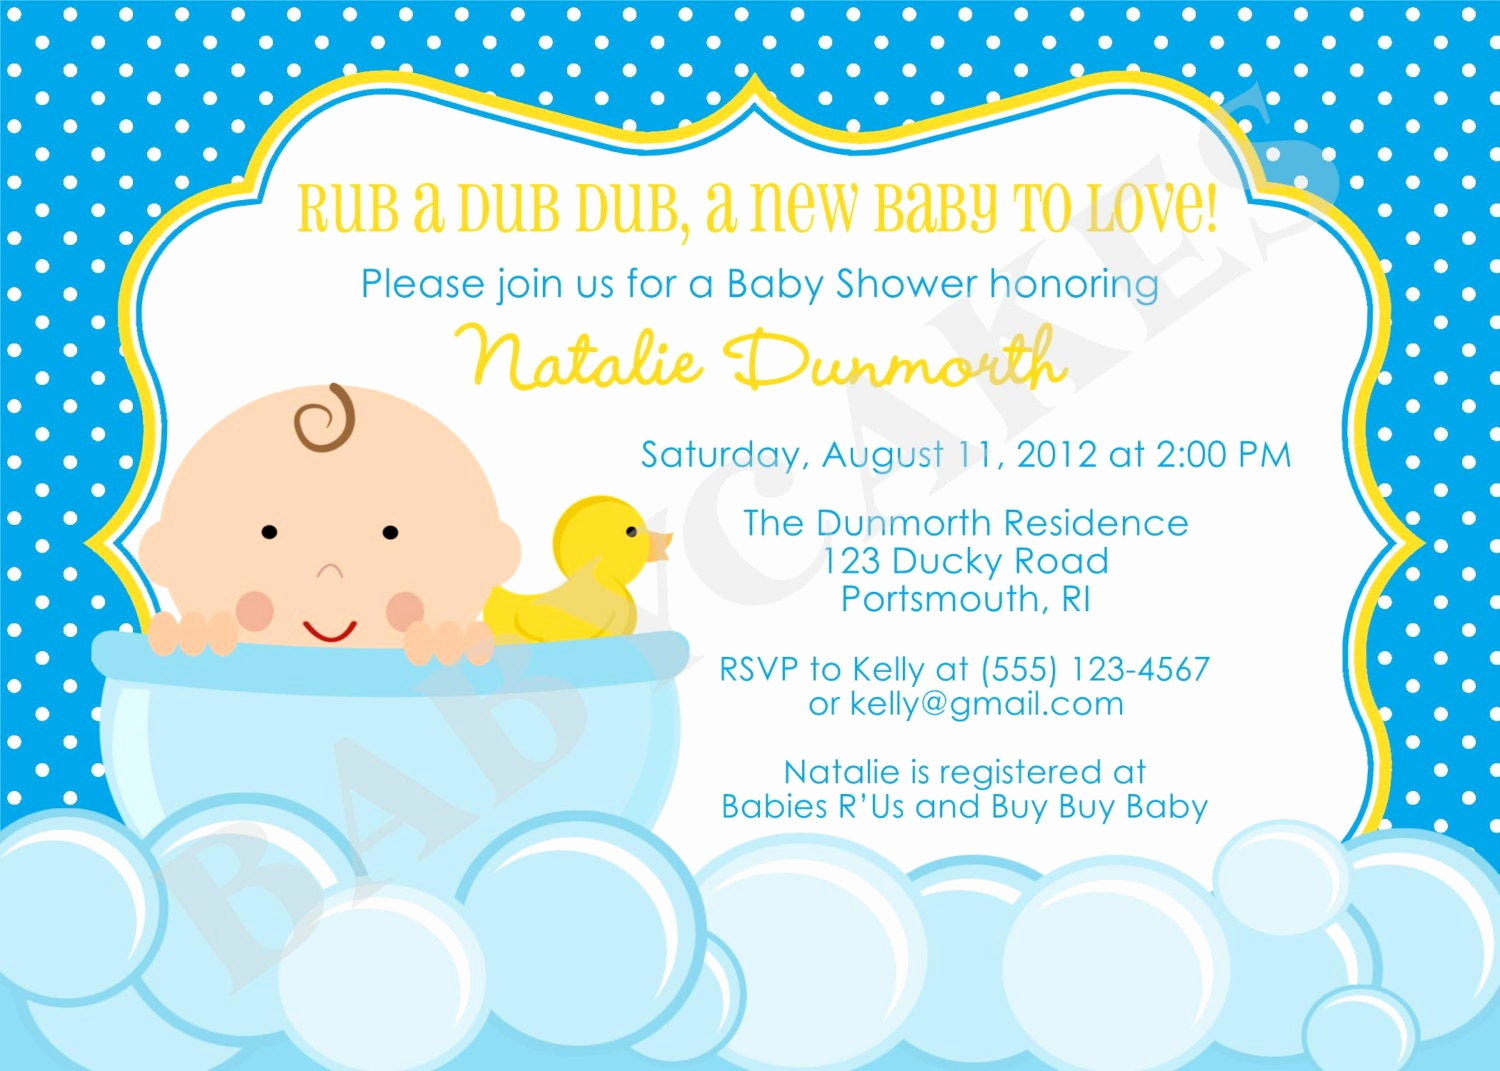 Rubber Ducky Baby Shower Invitation New Rubber Ducky Baby Shower Invitation Diy Print Your Own